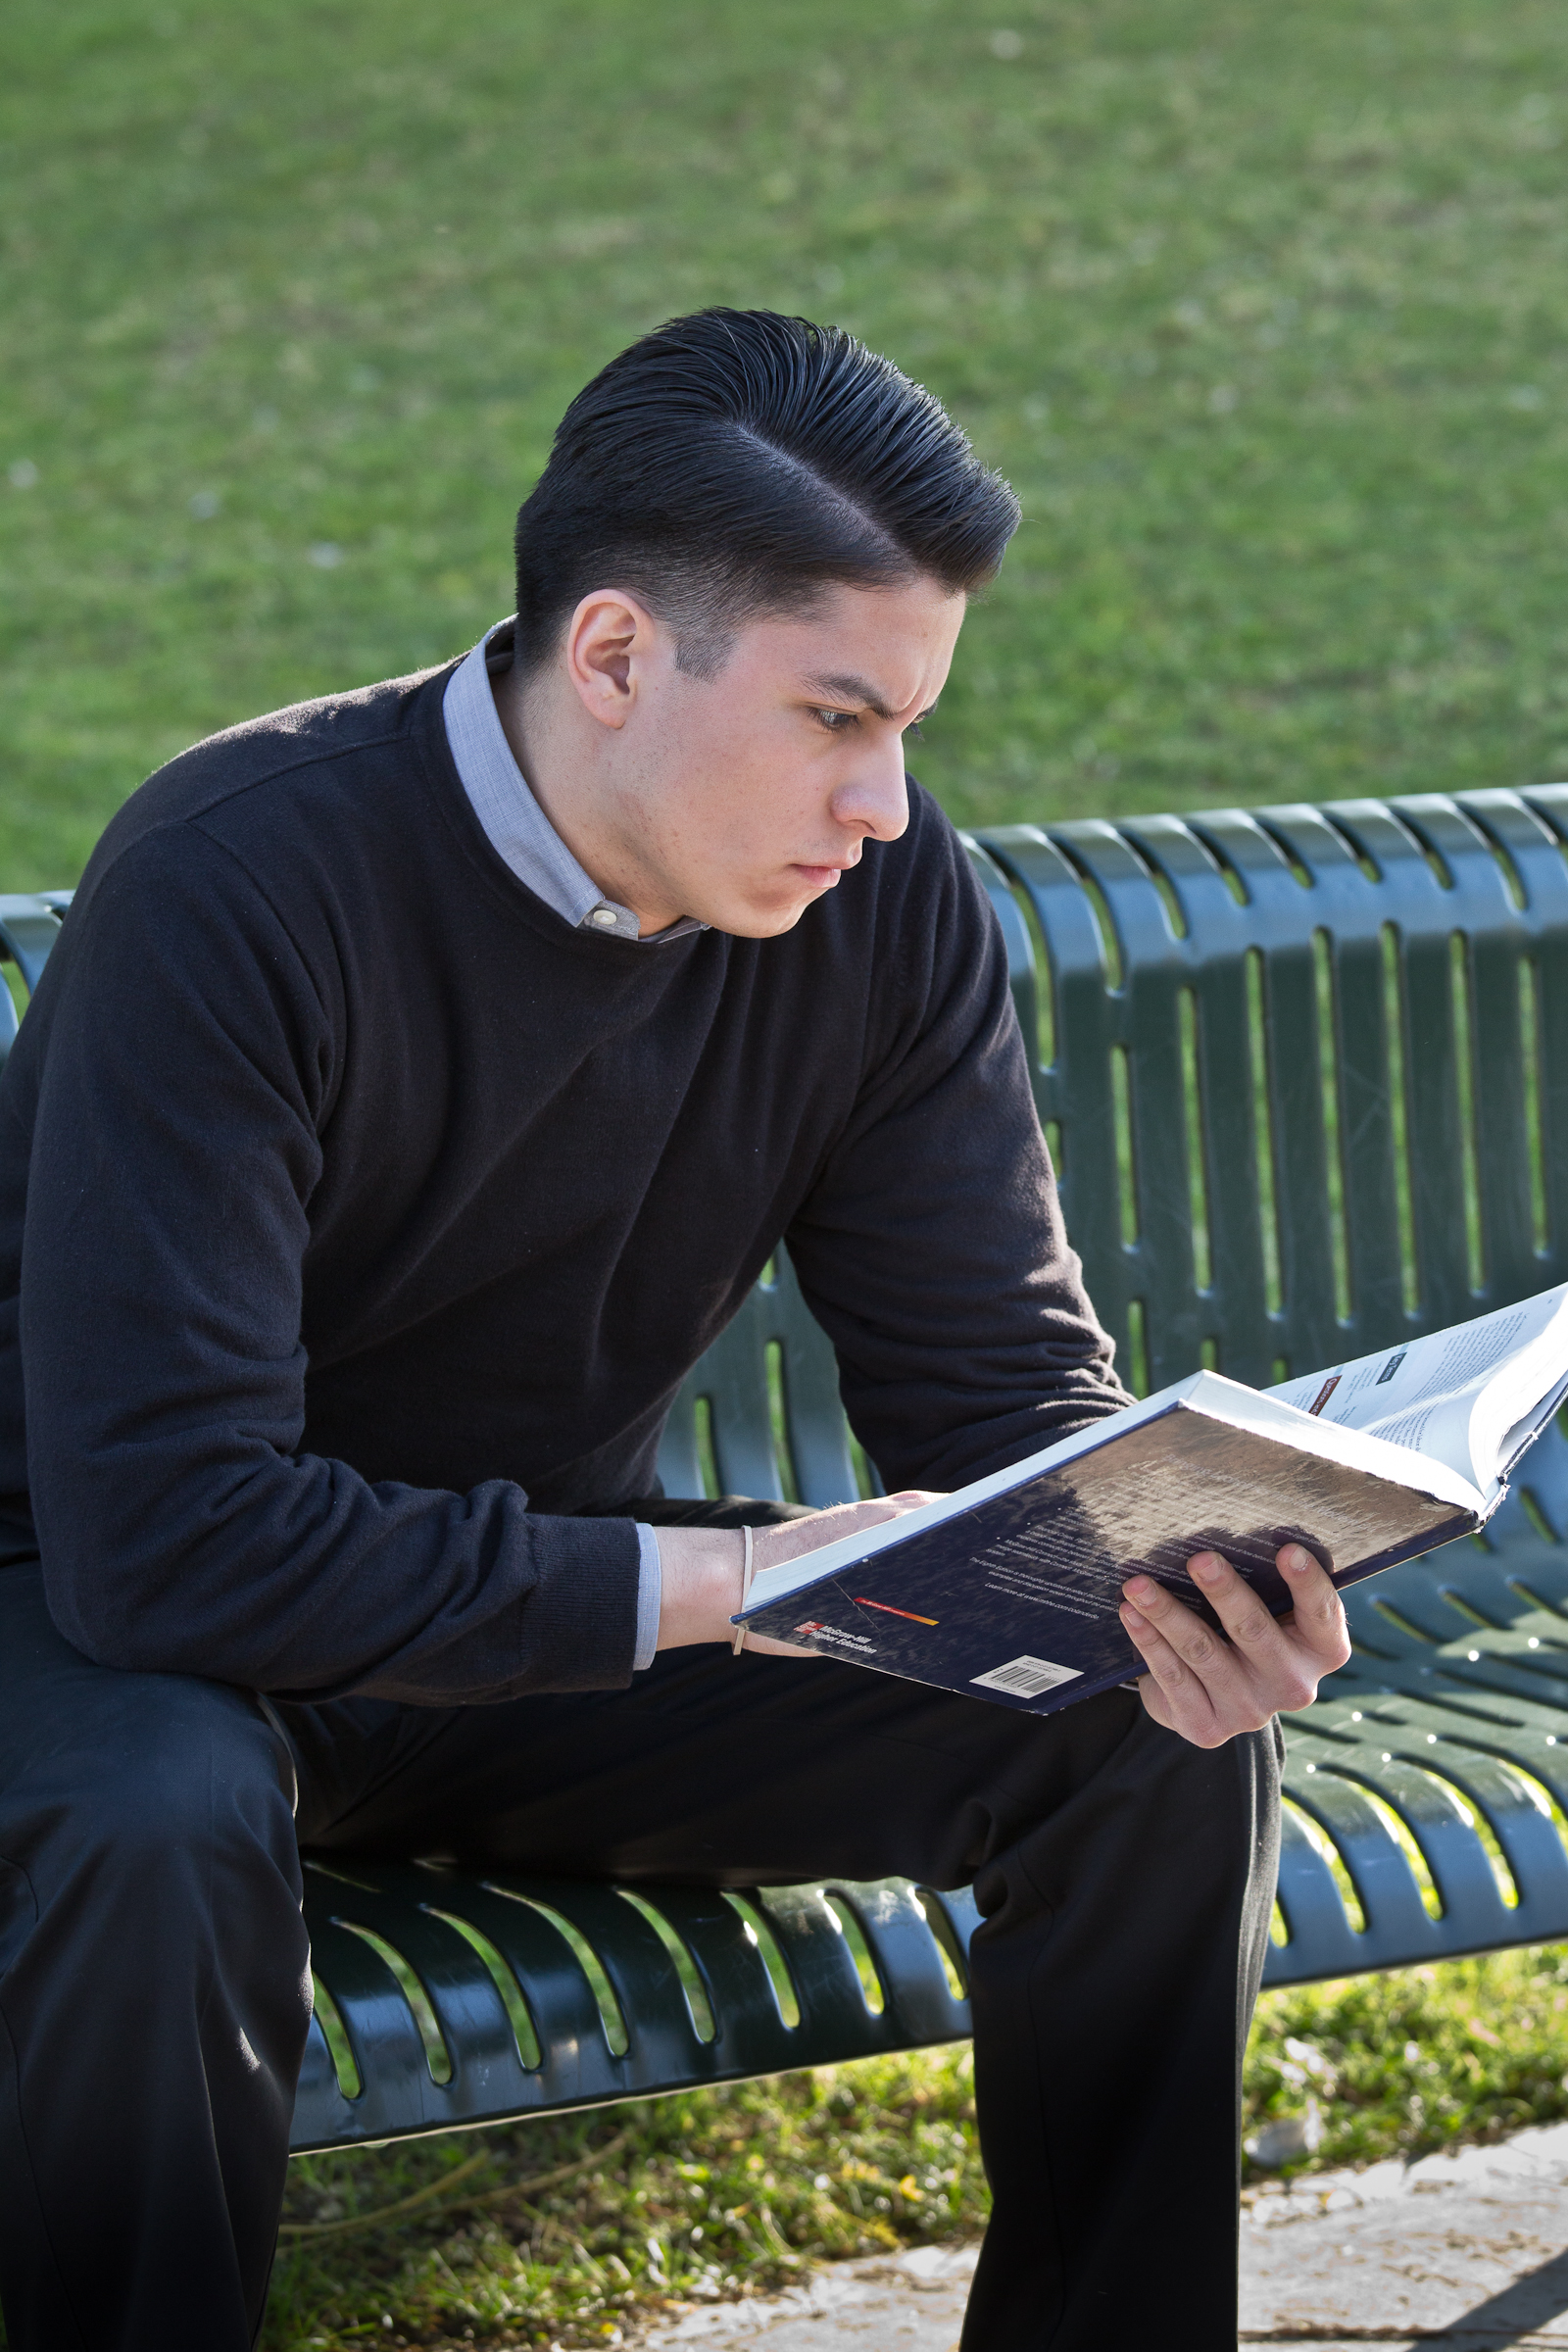 Student Reading while sitting on a bench